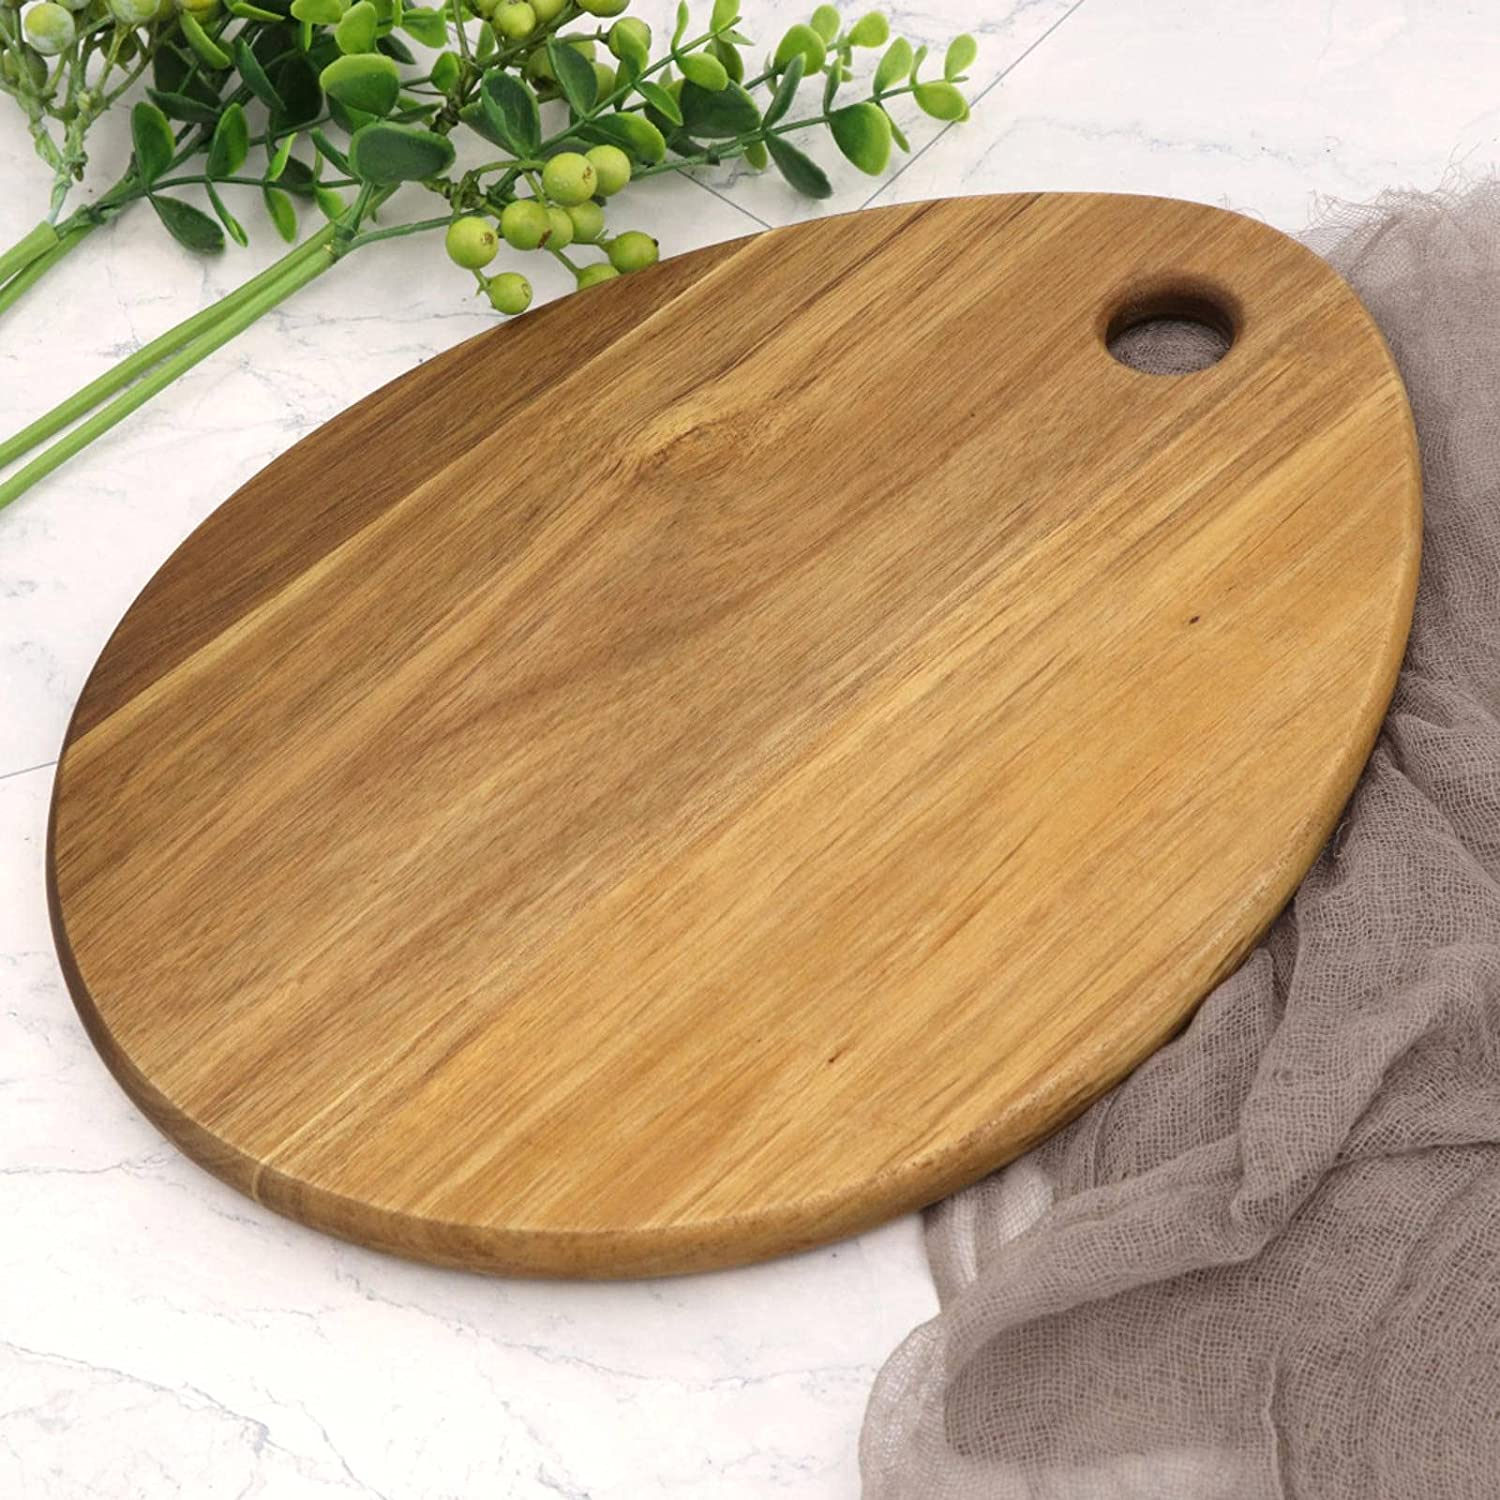 N\C Japan Maker New Wooden Chopping Board Plate Food Max 65% OFF Kitchen Piz